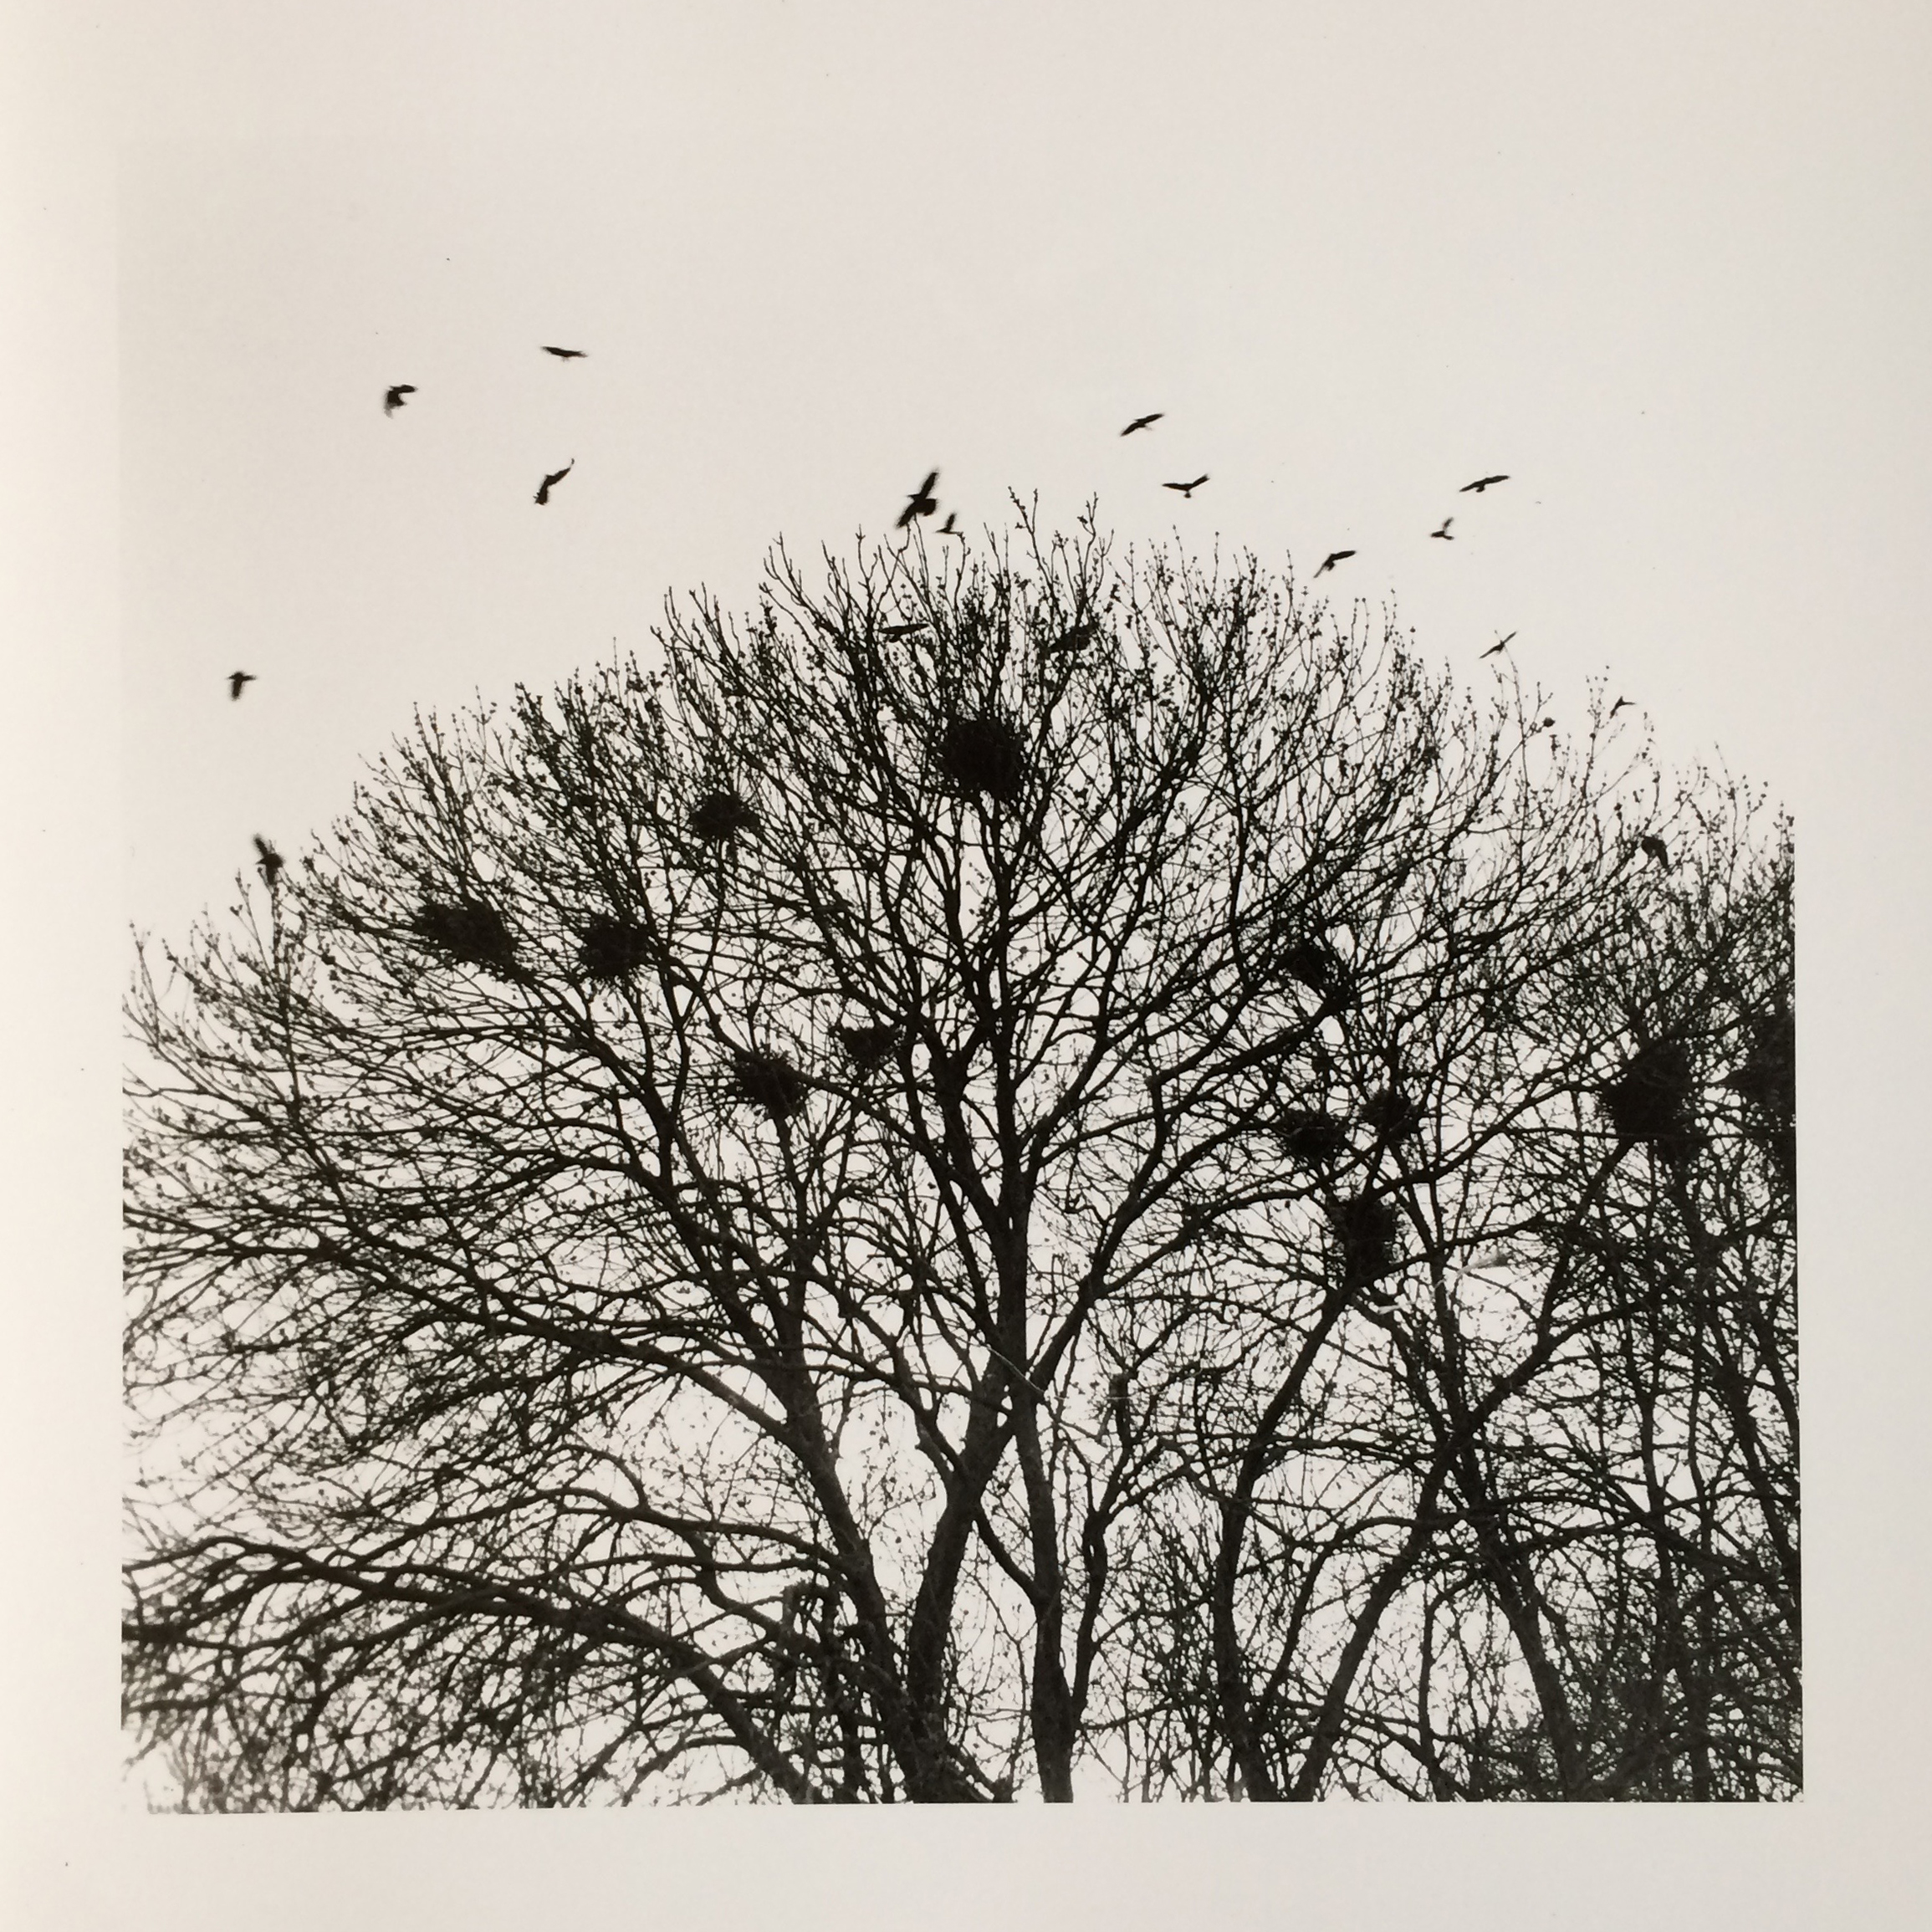 'Rooks Nest', Lotte Attwood, Hand-printed photography on silver bromide fibre based paper, 35x35cm